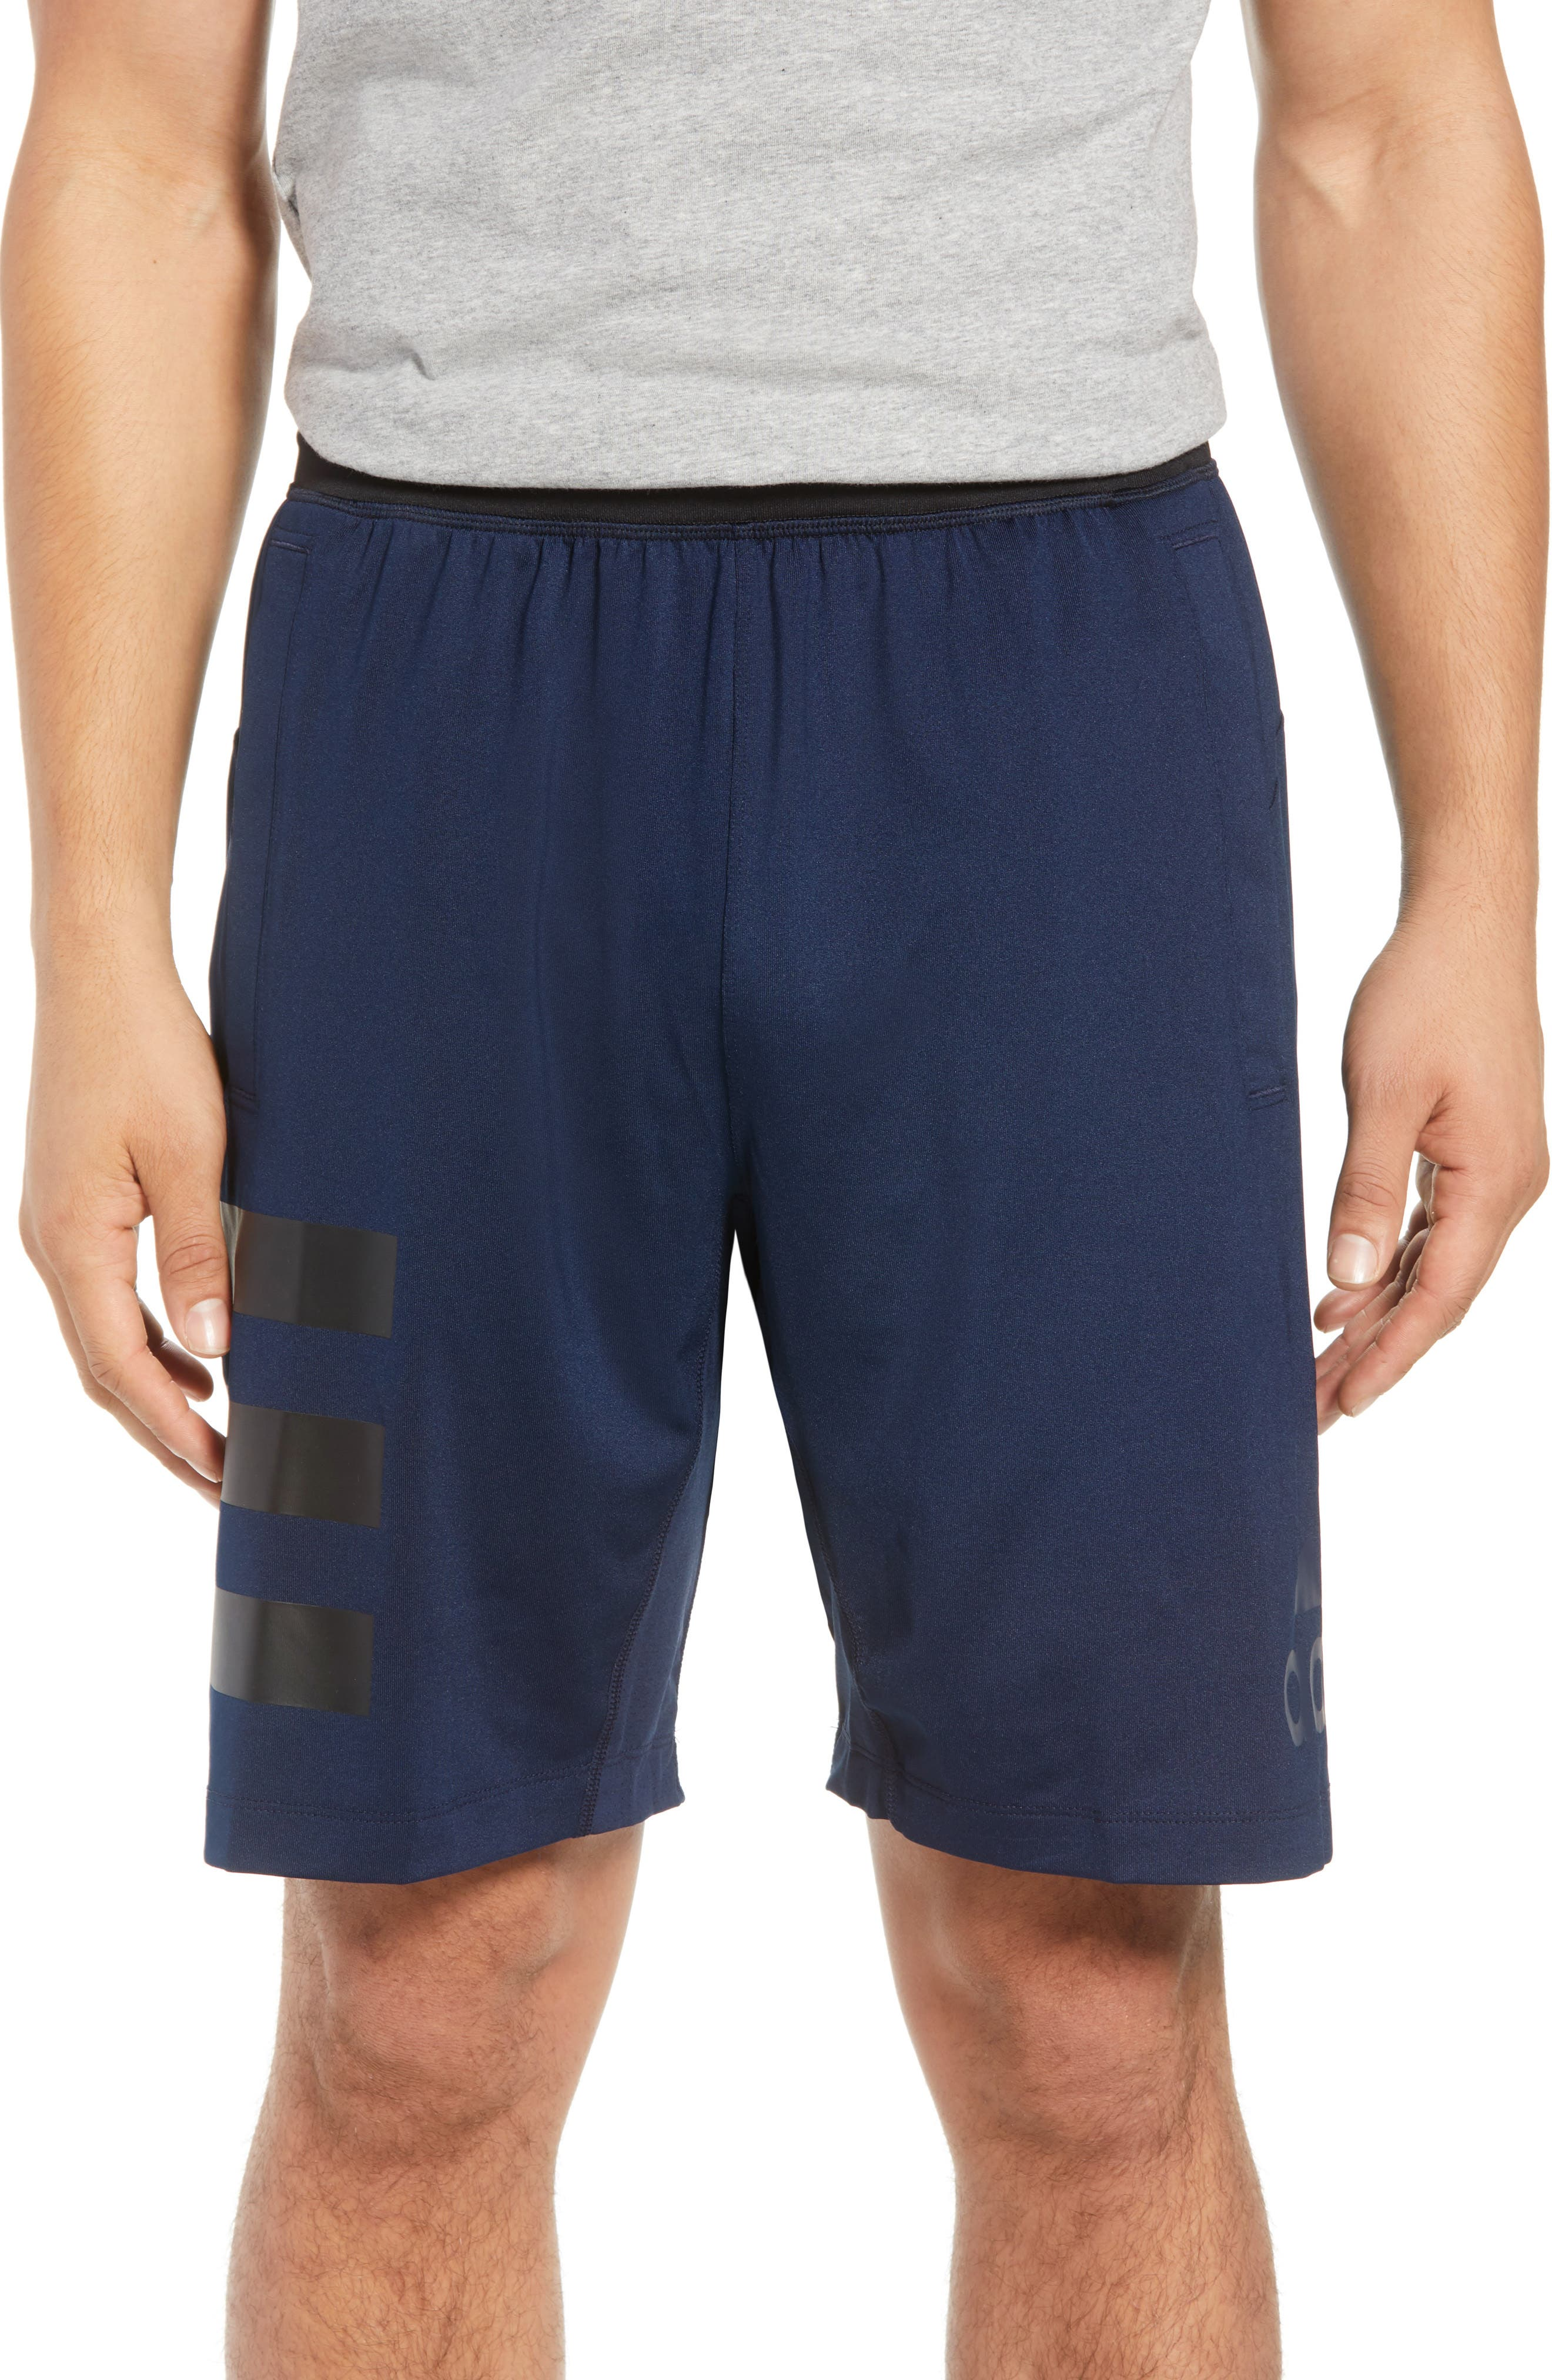 SB Hype Icon Shorts,                         Main,                         color, COLLEGIATE NAVY/ BLACK